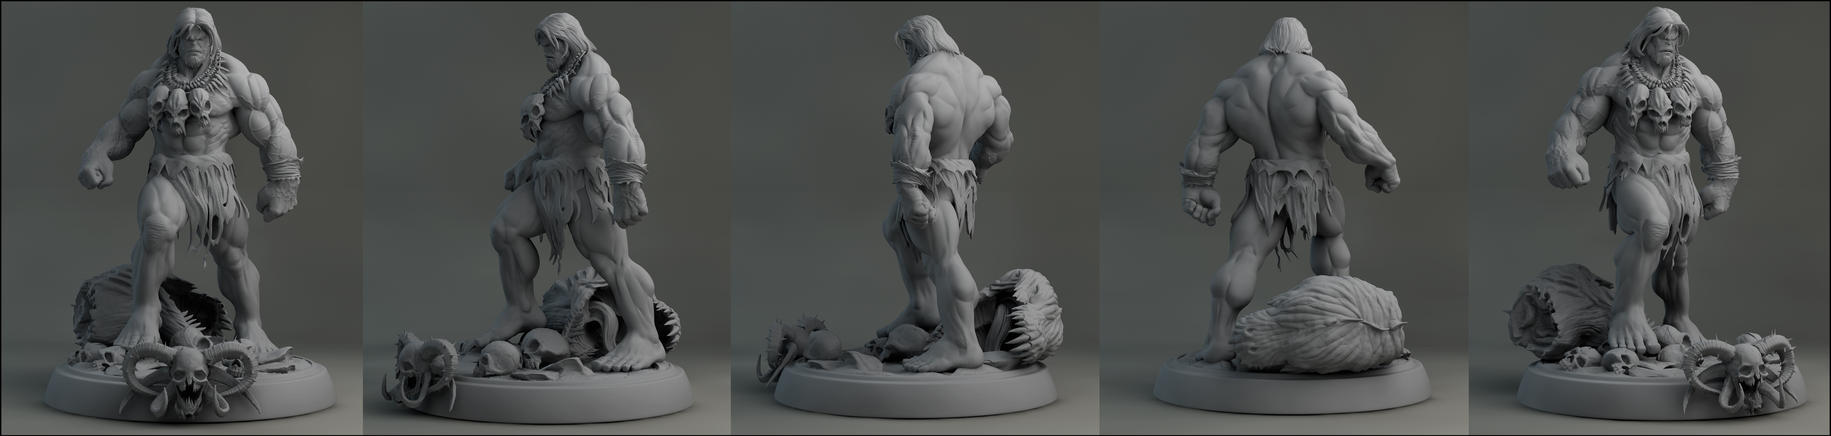 Mark Silvestri Hulk by AYsculpture